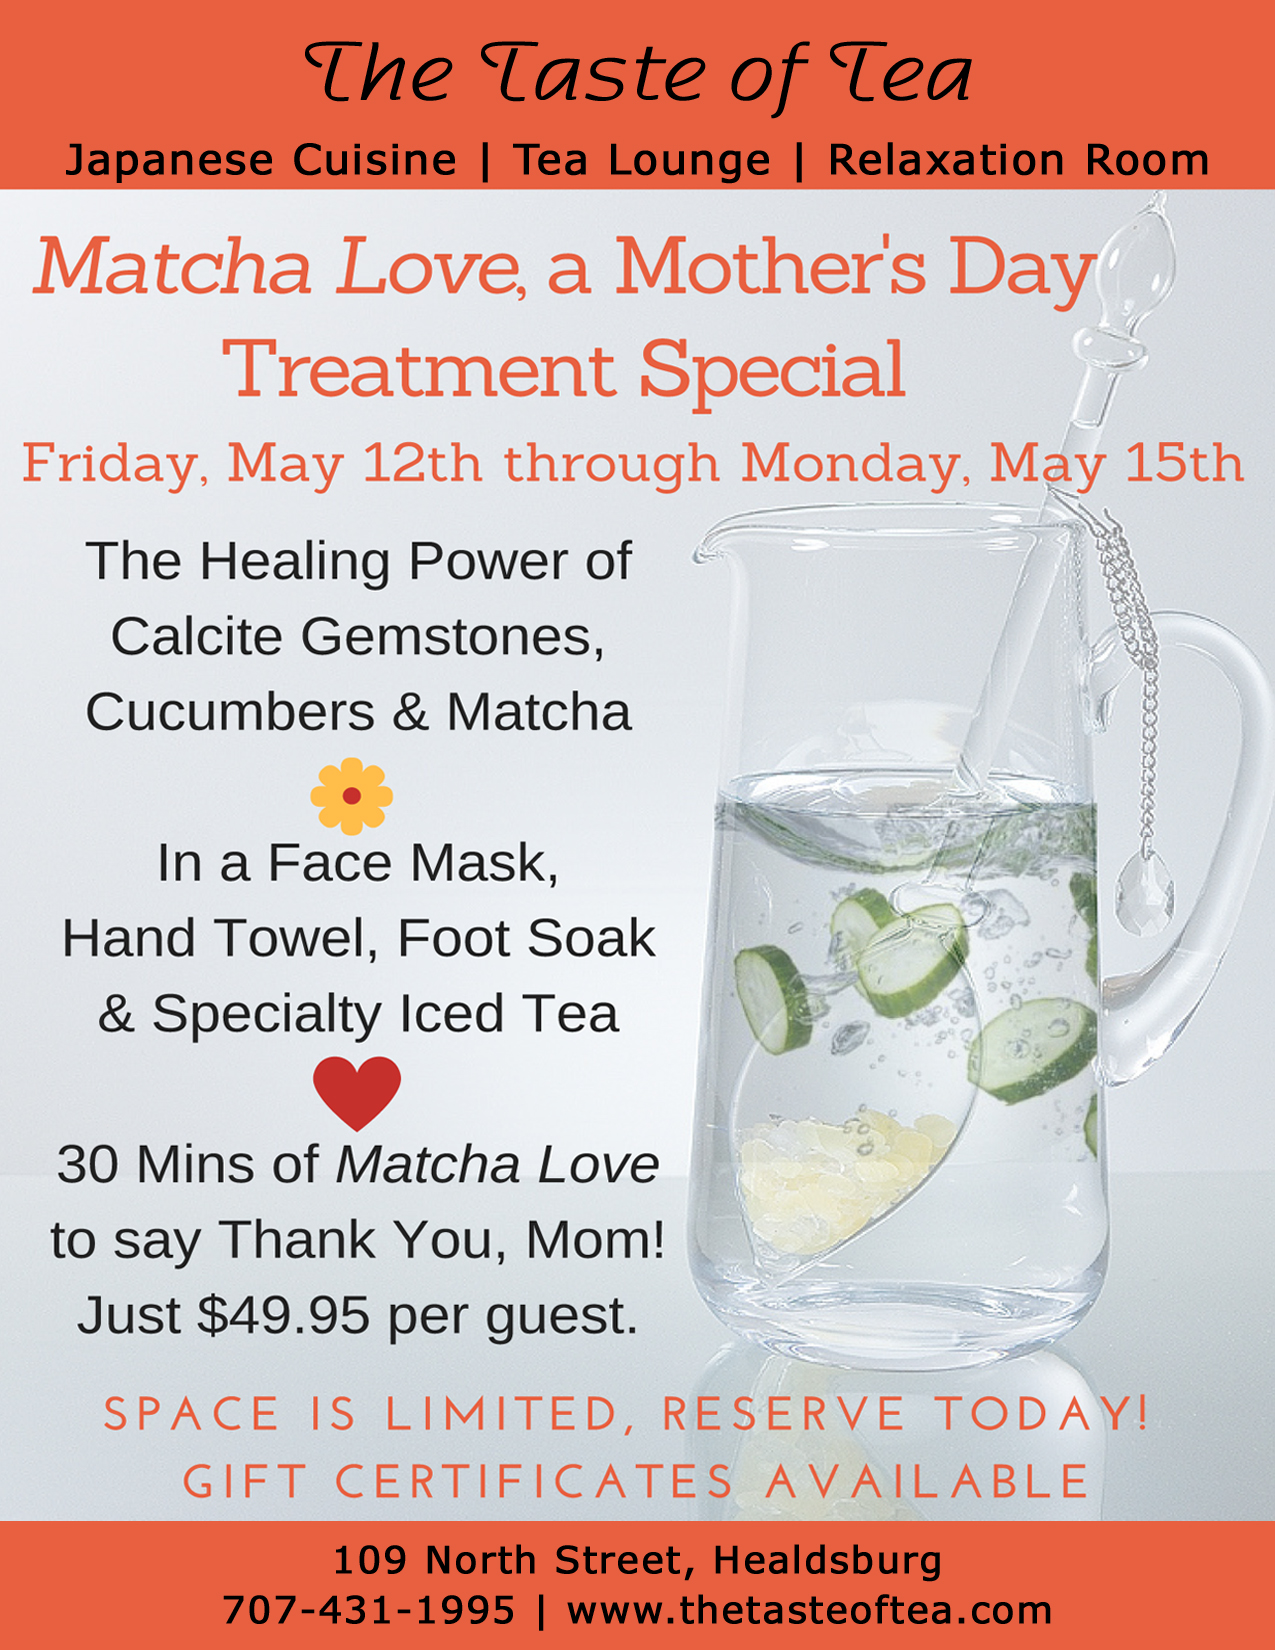 Matcha Love, Mother's Day Treatment